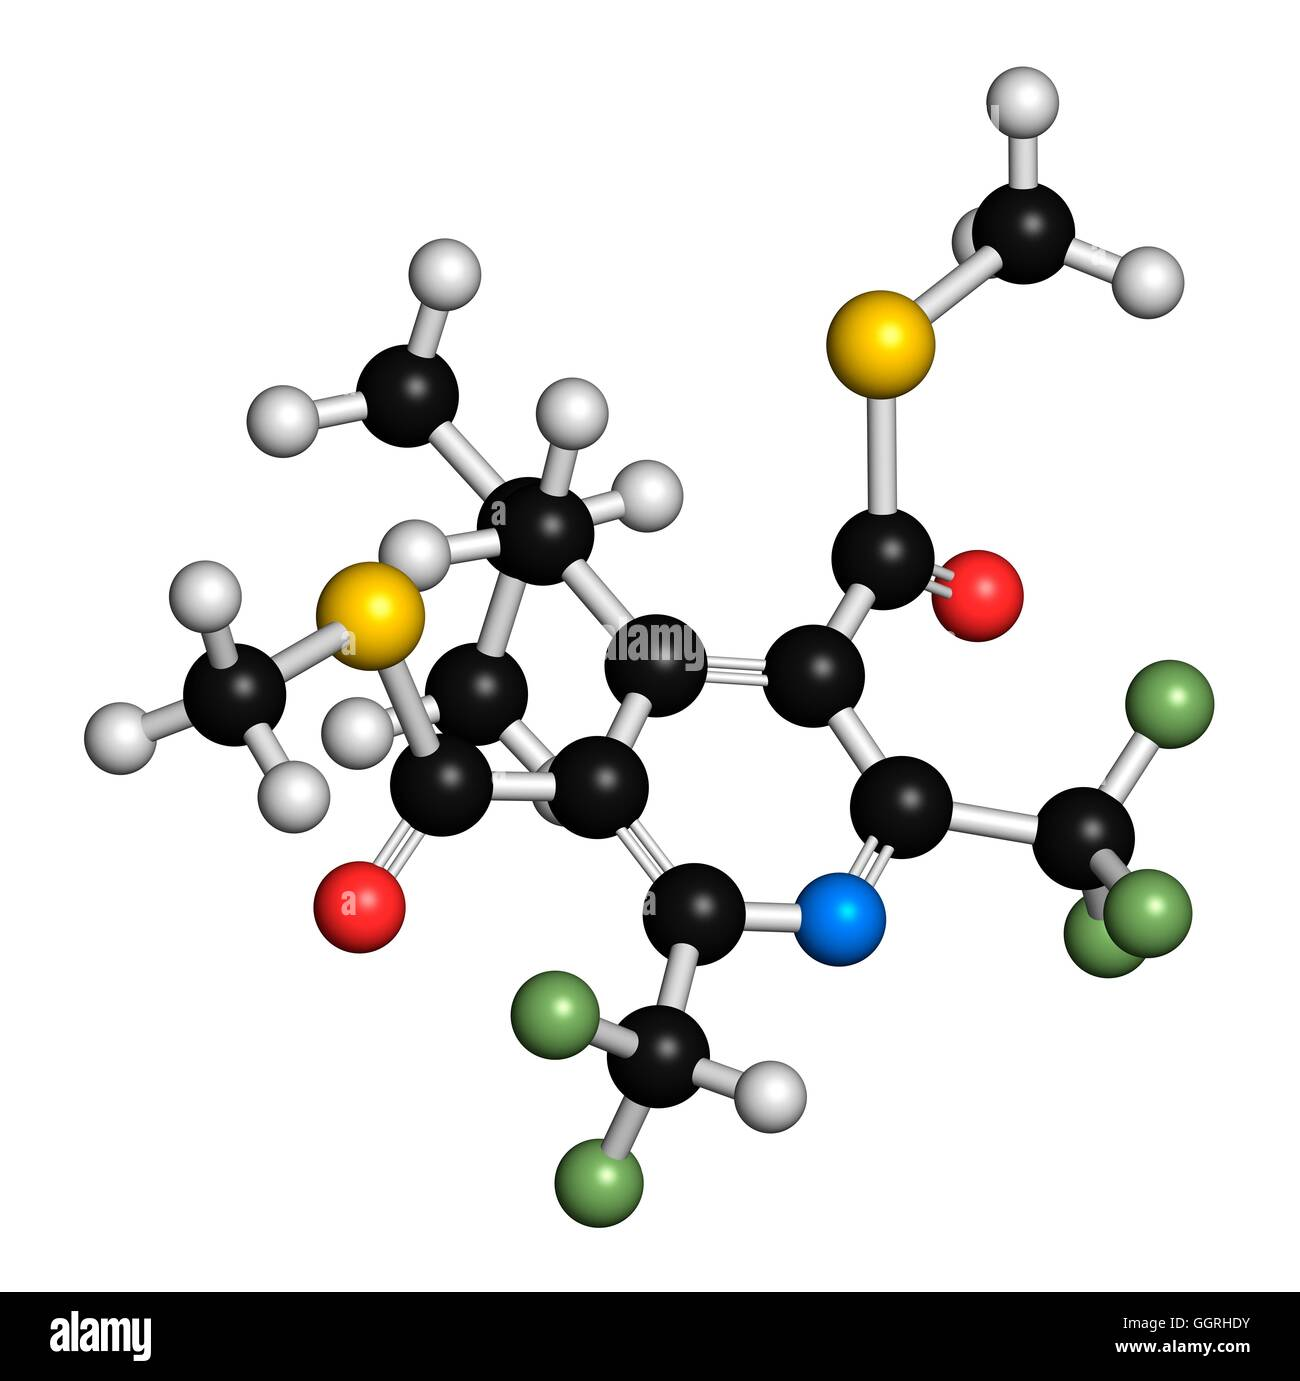 dithiopyr preemergent herbicide molecular model atoms are represented as spheres with colour coding - Preemergent Herbicide